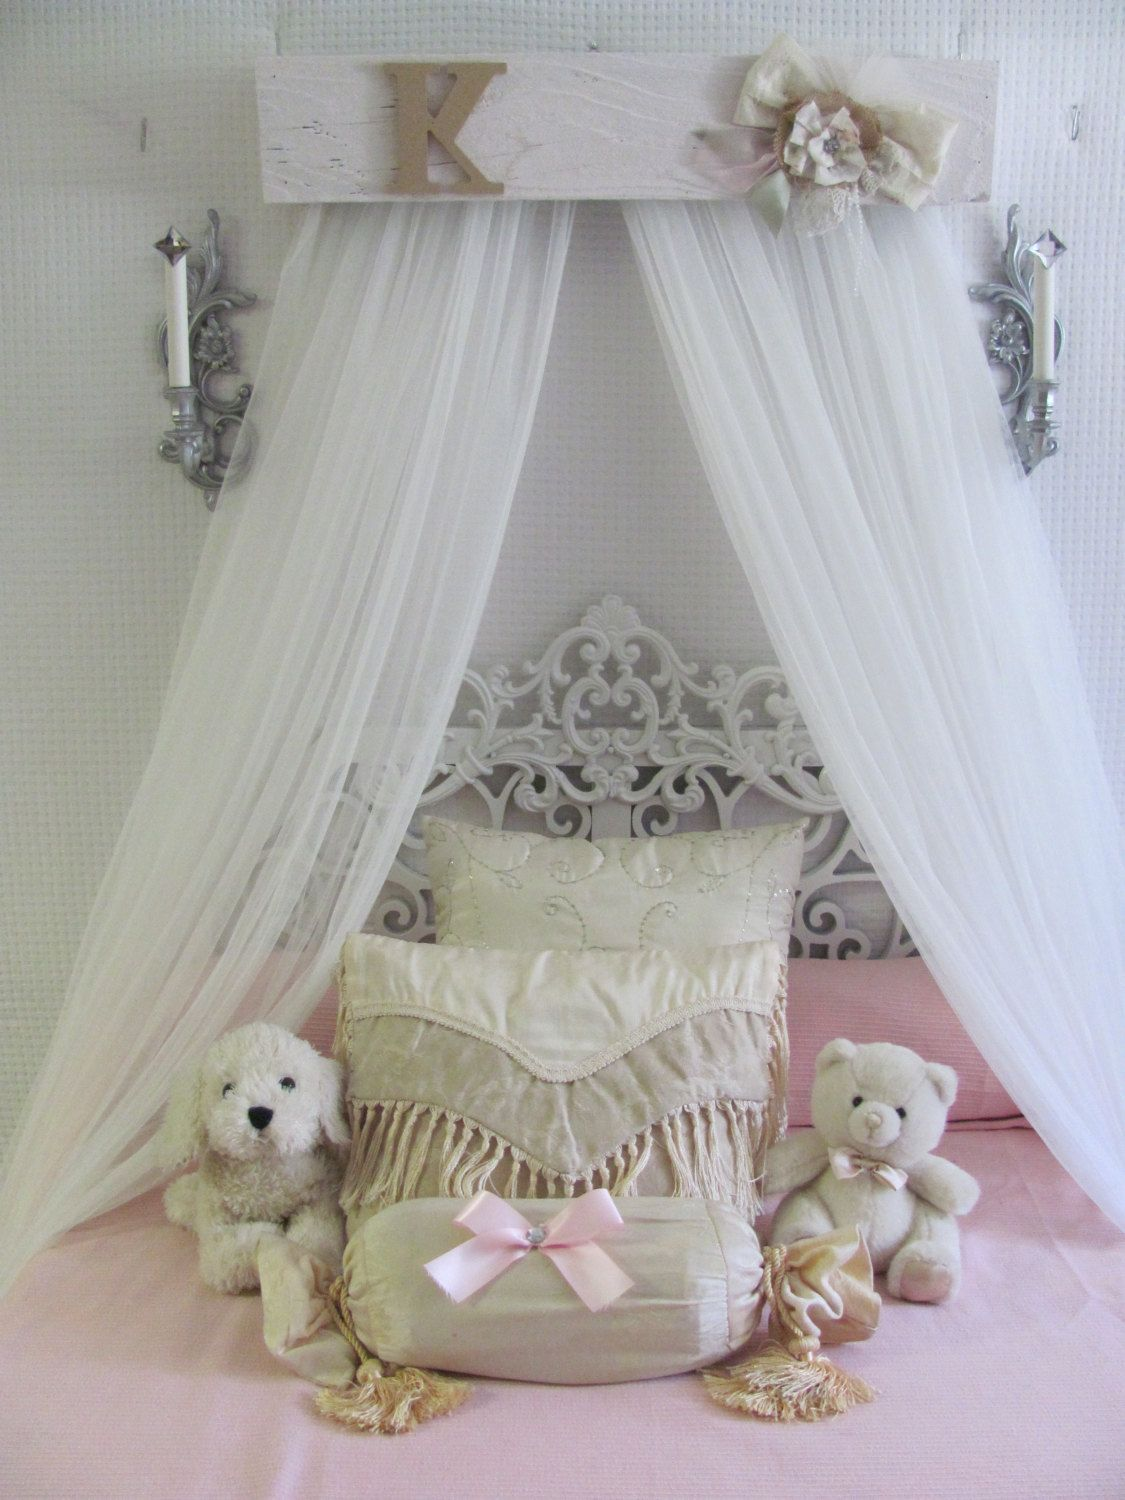 Shabby Chic Princess Bed Crown Canopy Crib Baby Nursery Decor Barnwood RuStiC Bedroom FREE White curtains & Shabby Chic Princess Bed Crown Canopy Crib Baby Nursery Decor ...